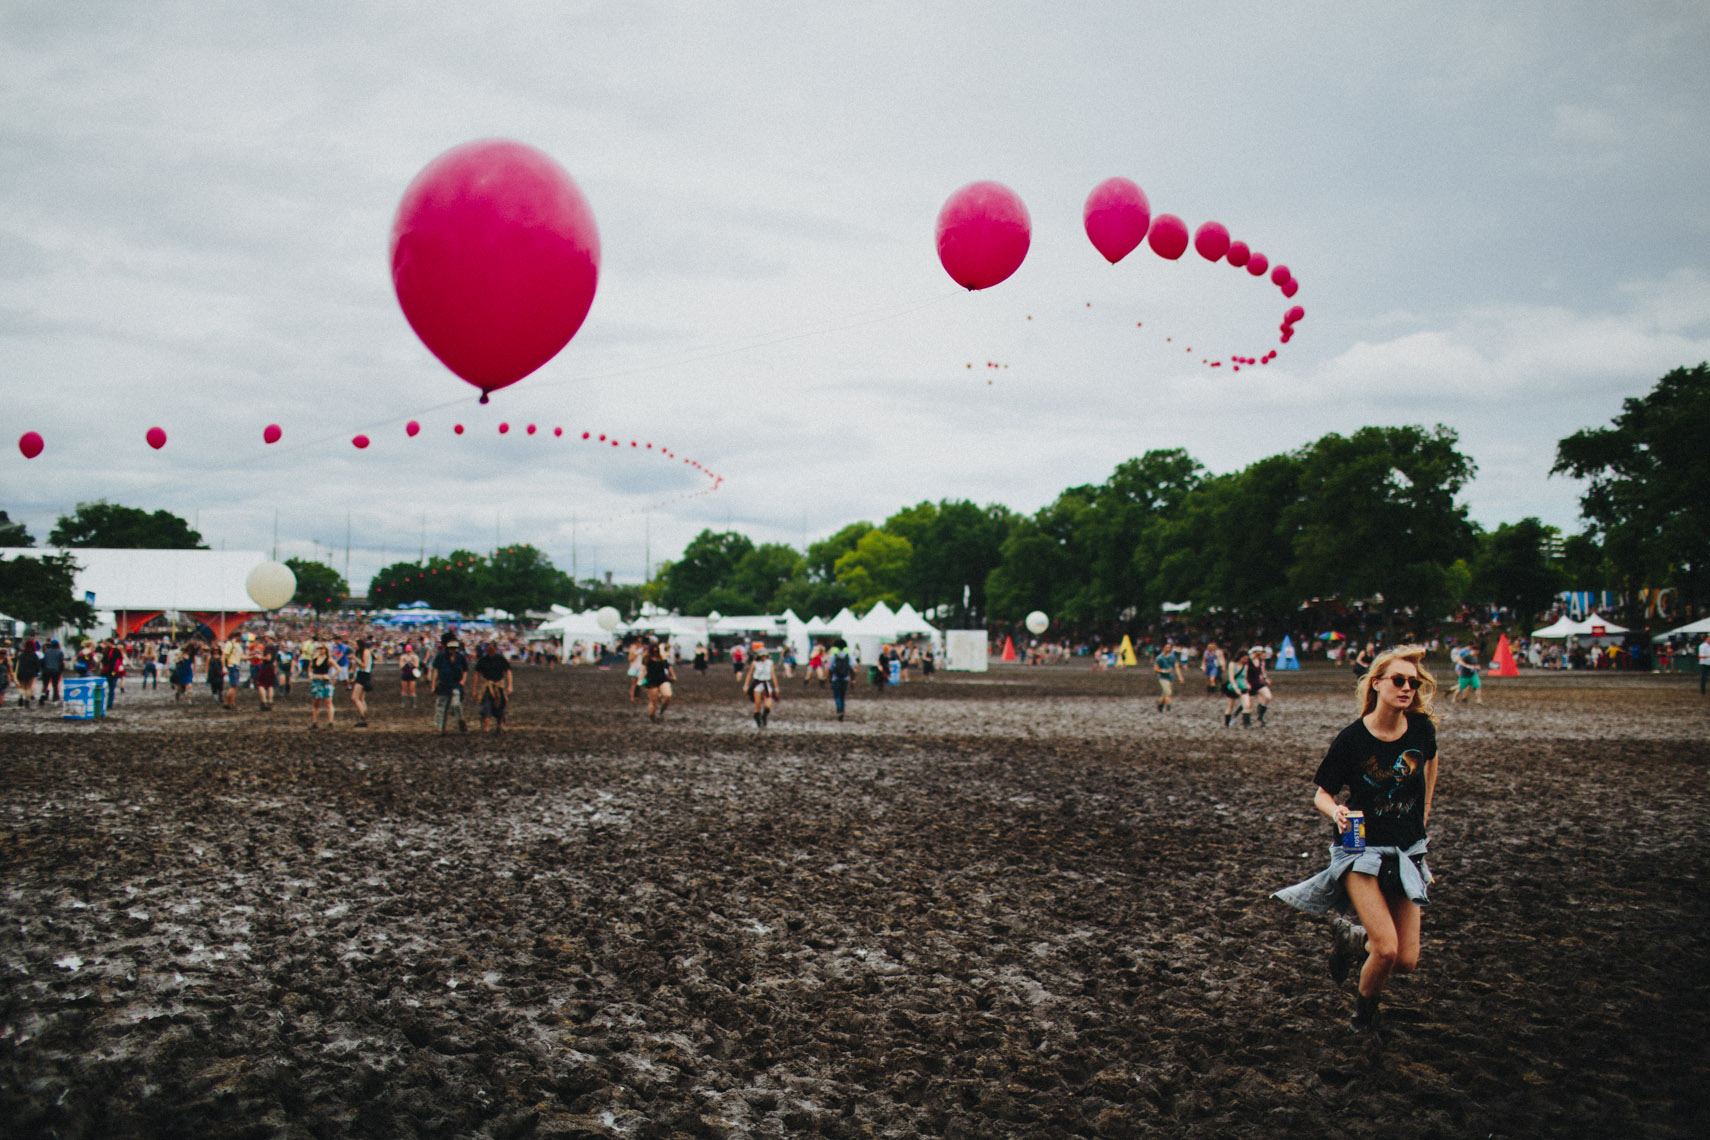 Governors ball mud and balloons photographed by Forest Woodward